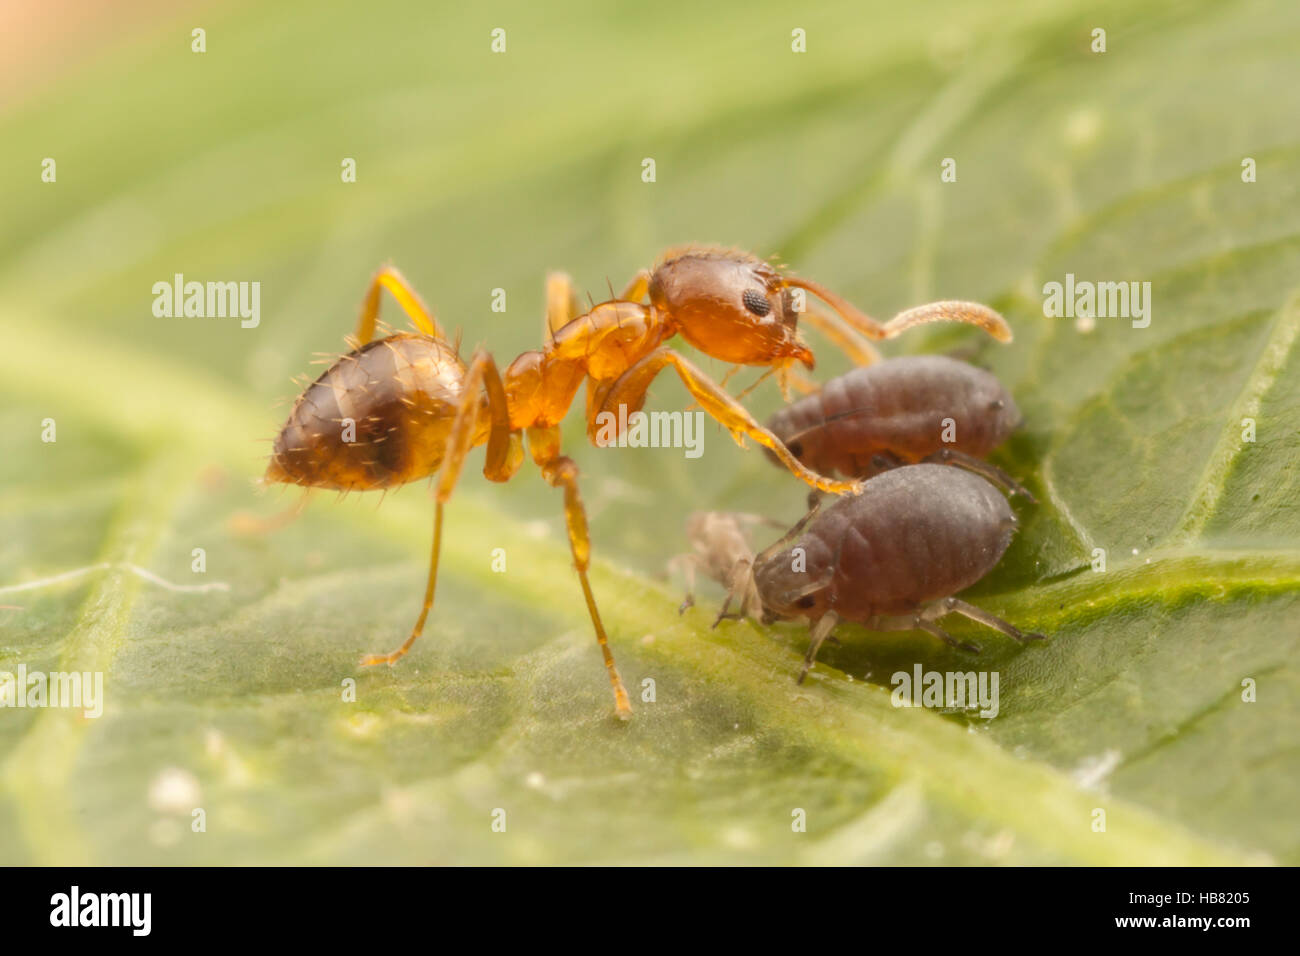 A Crazy Ant (Nylanderia flavipes) tends aphids (Aphis sp.) for their honeydew. - Stock Image